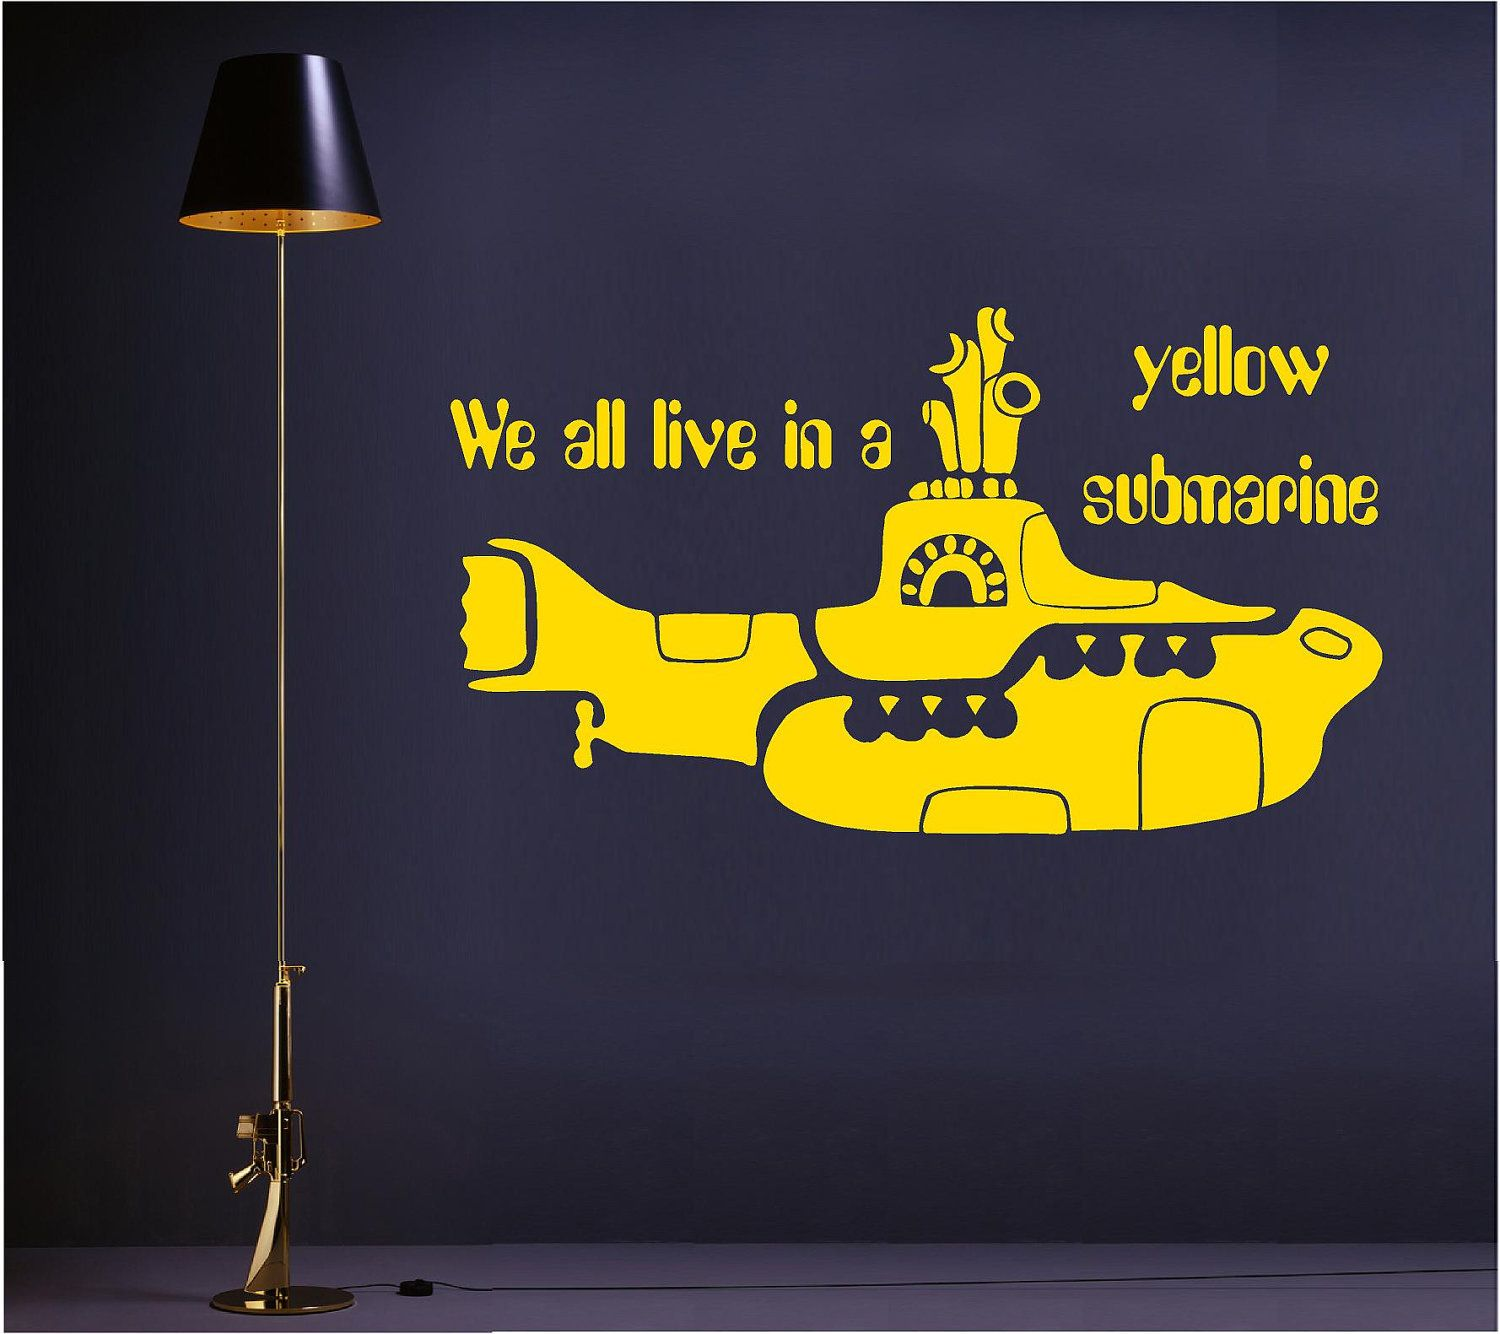 we all live in a yellow submarine ver-2 vinyl wall art decal